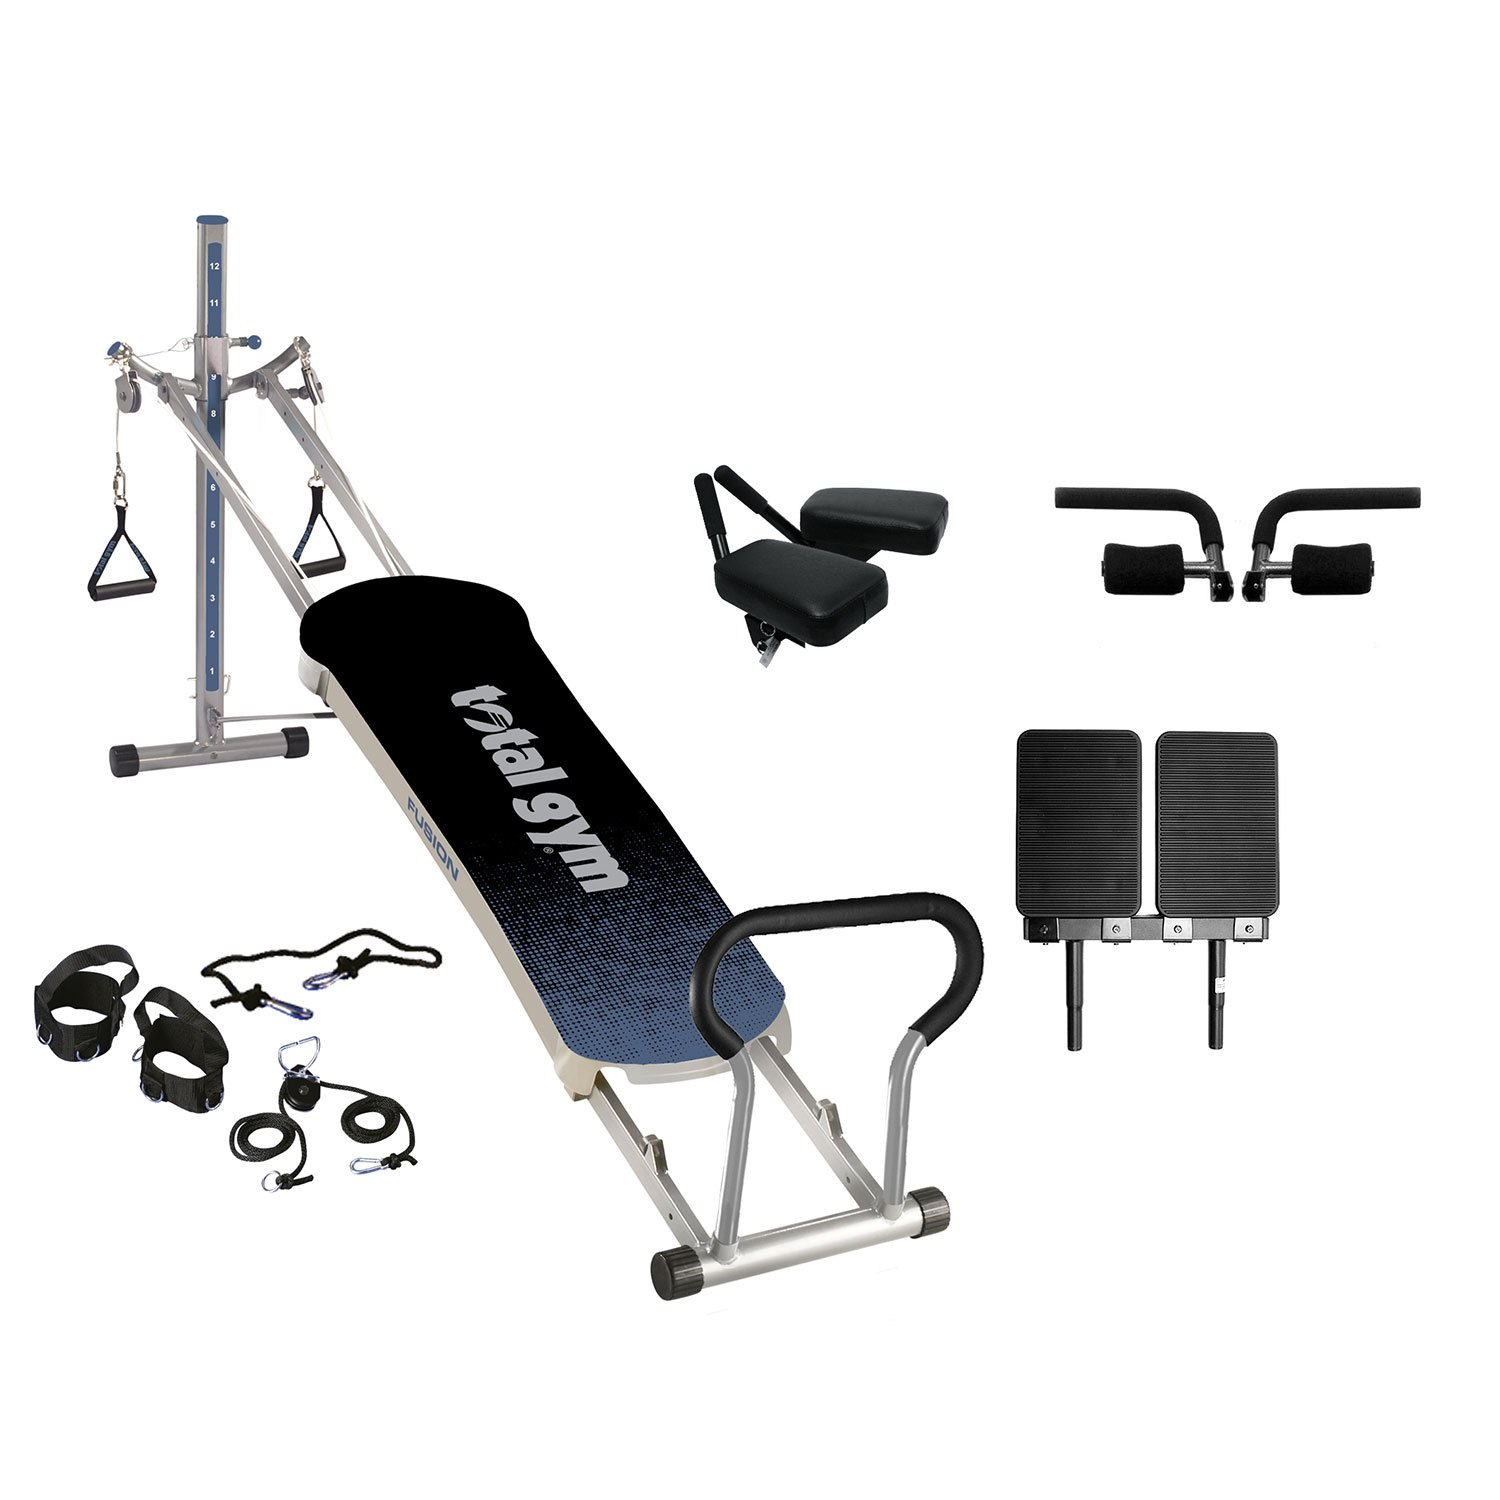 Total Gym Fusion Exercise Machine, Grey by Total Gym (Image #1)